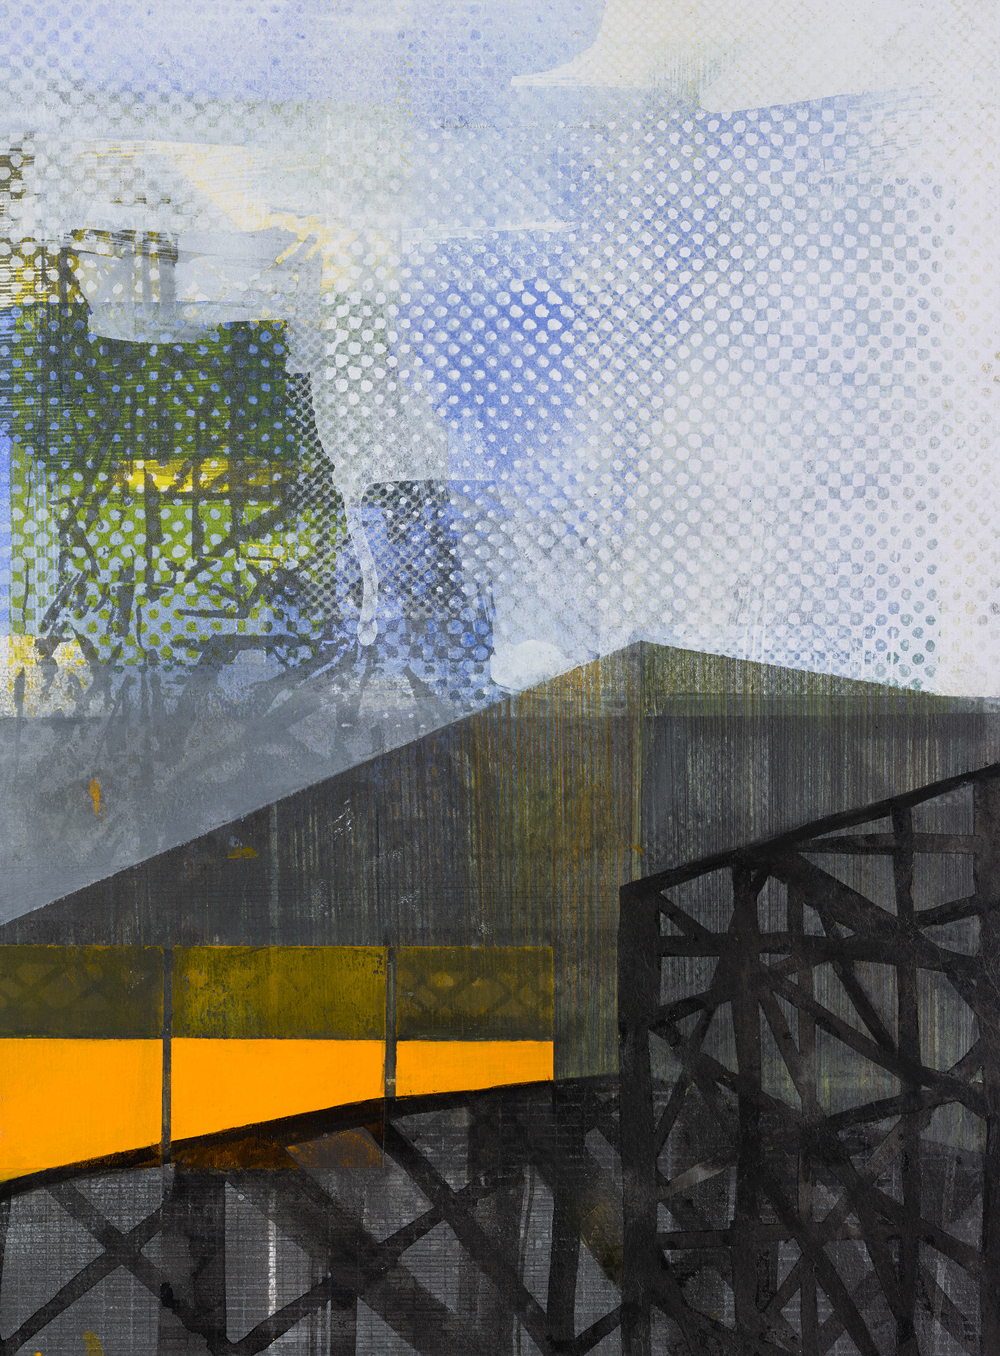 Amanda Knowles, Duwamish Study VI, 2018, screen print, graphite, acrylic on paper, 14.75 x 10.75 inches, $650.